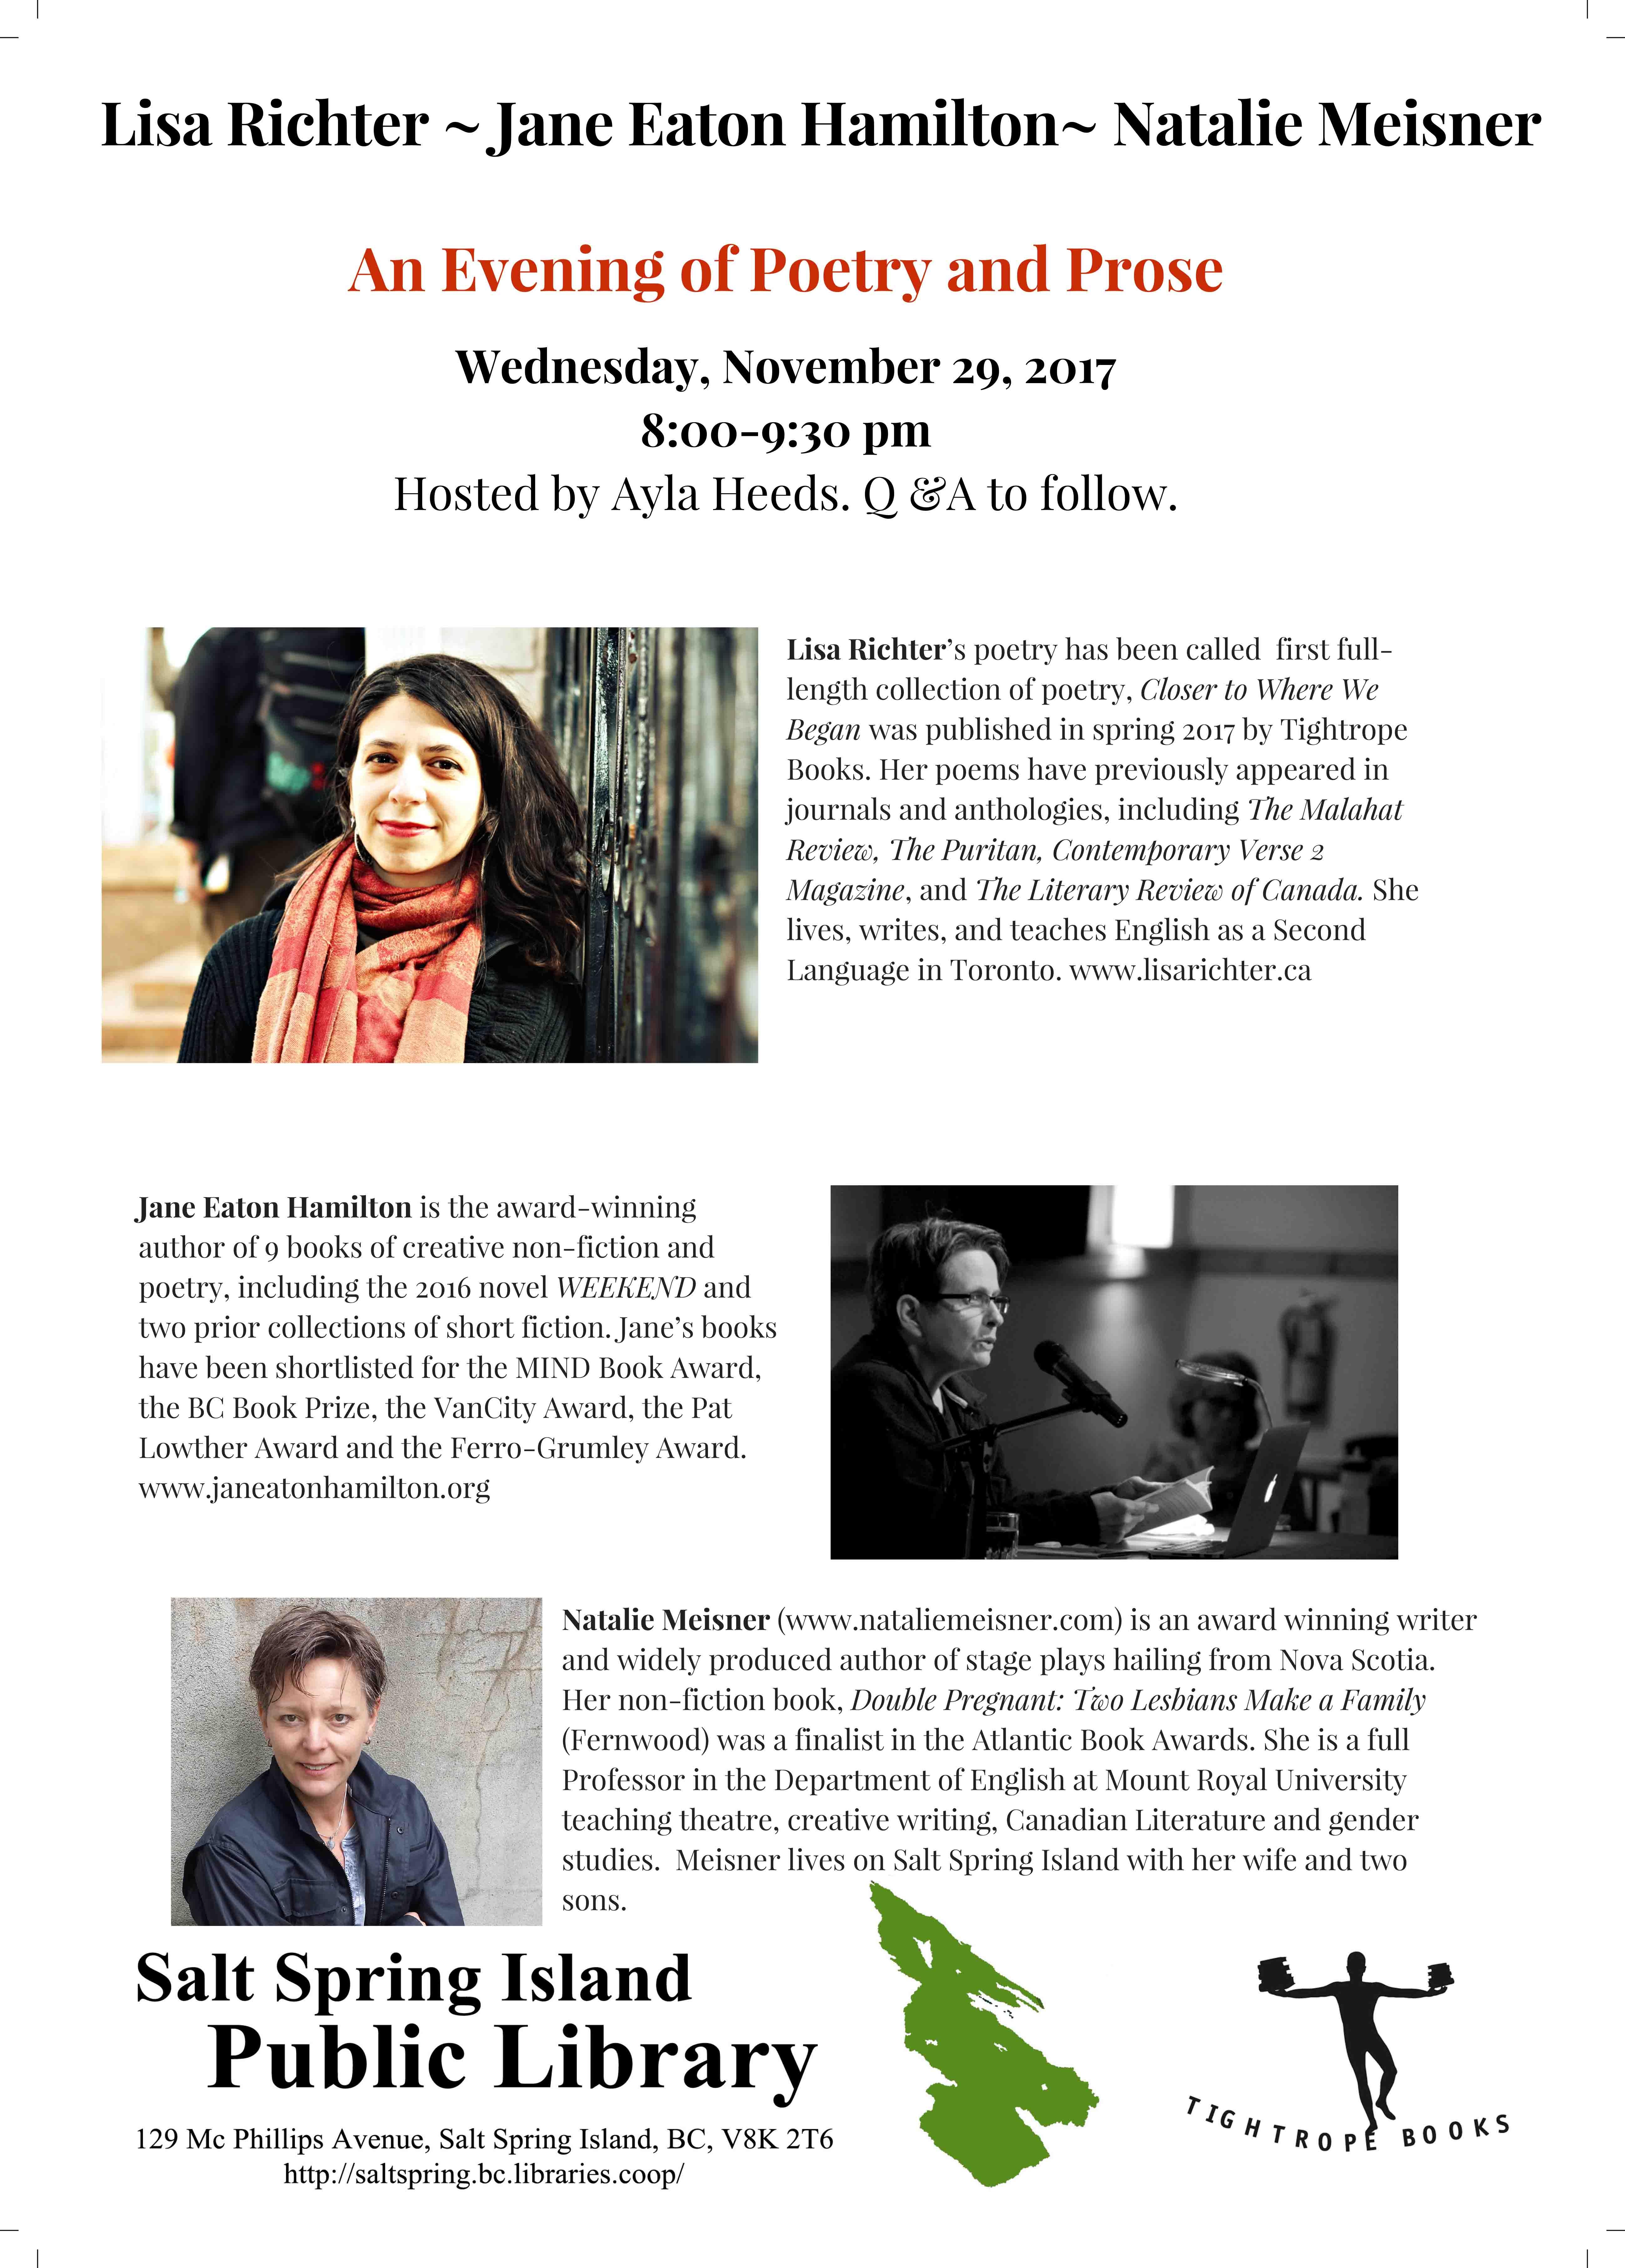 An Evening of Poetry and Prose @ Library Program Room